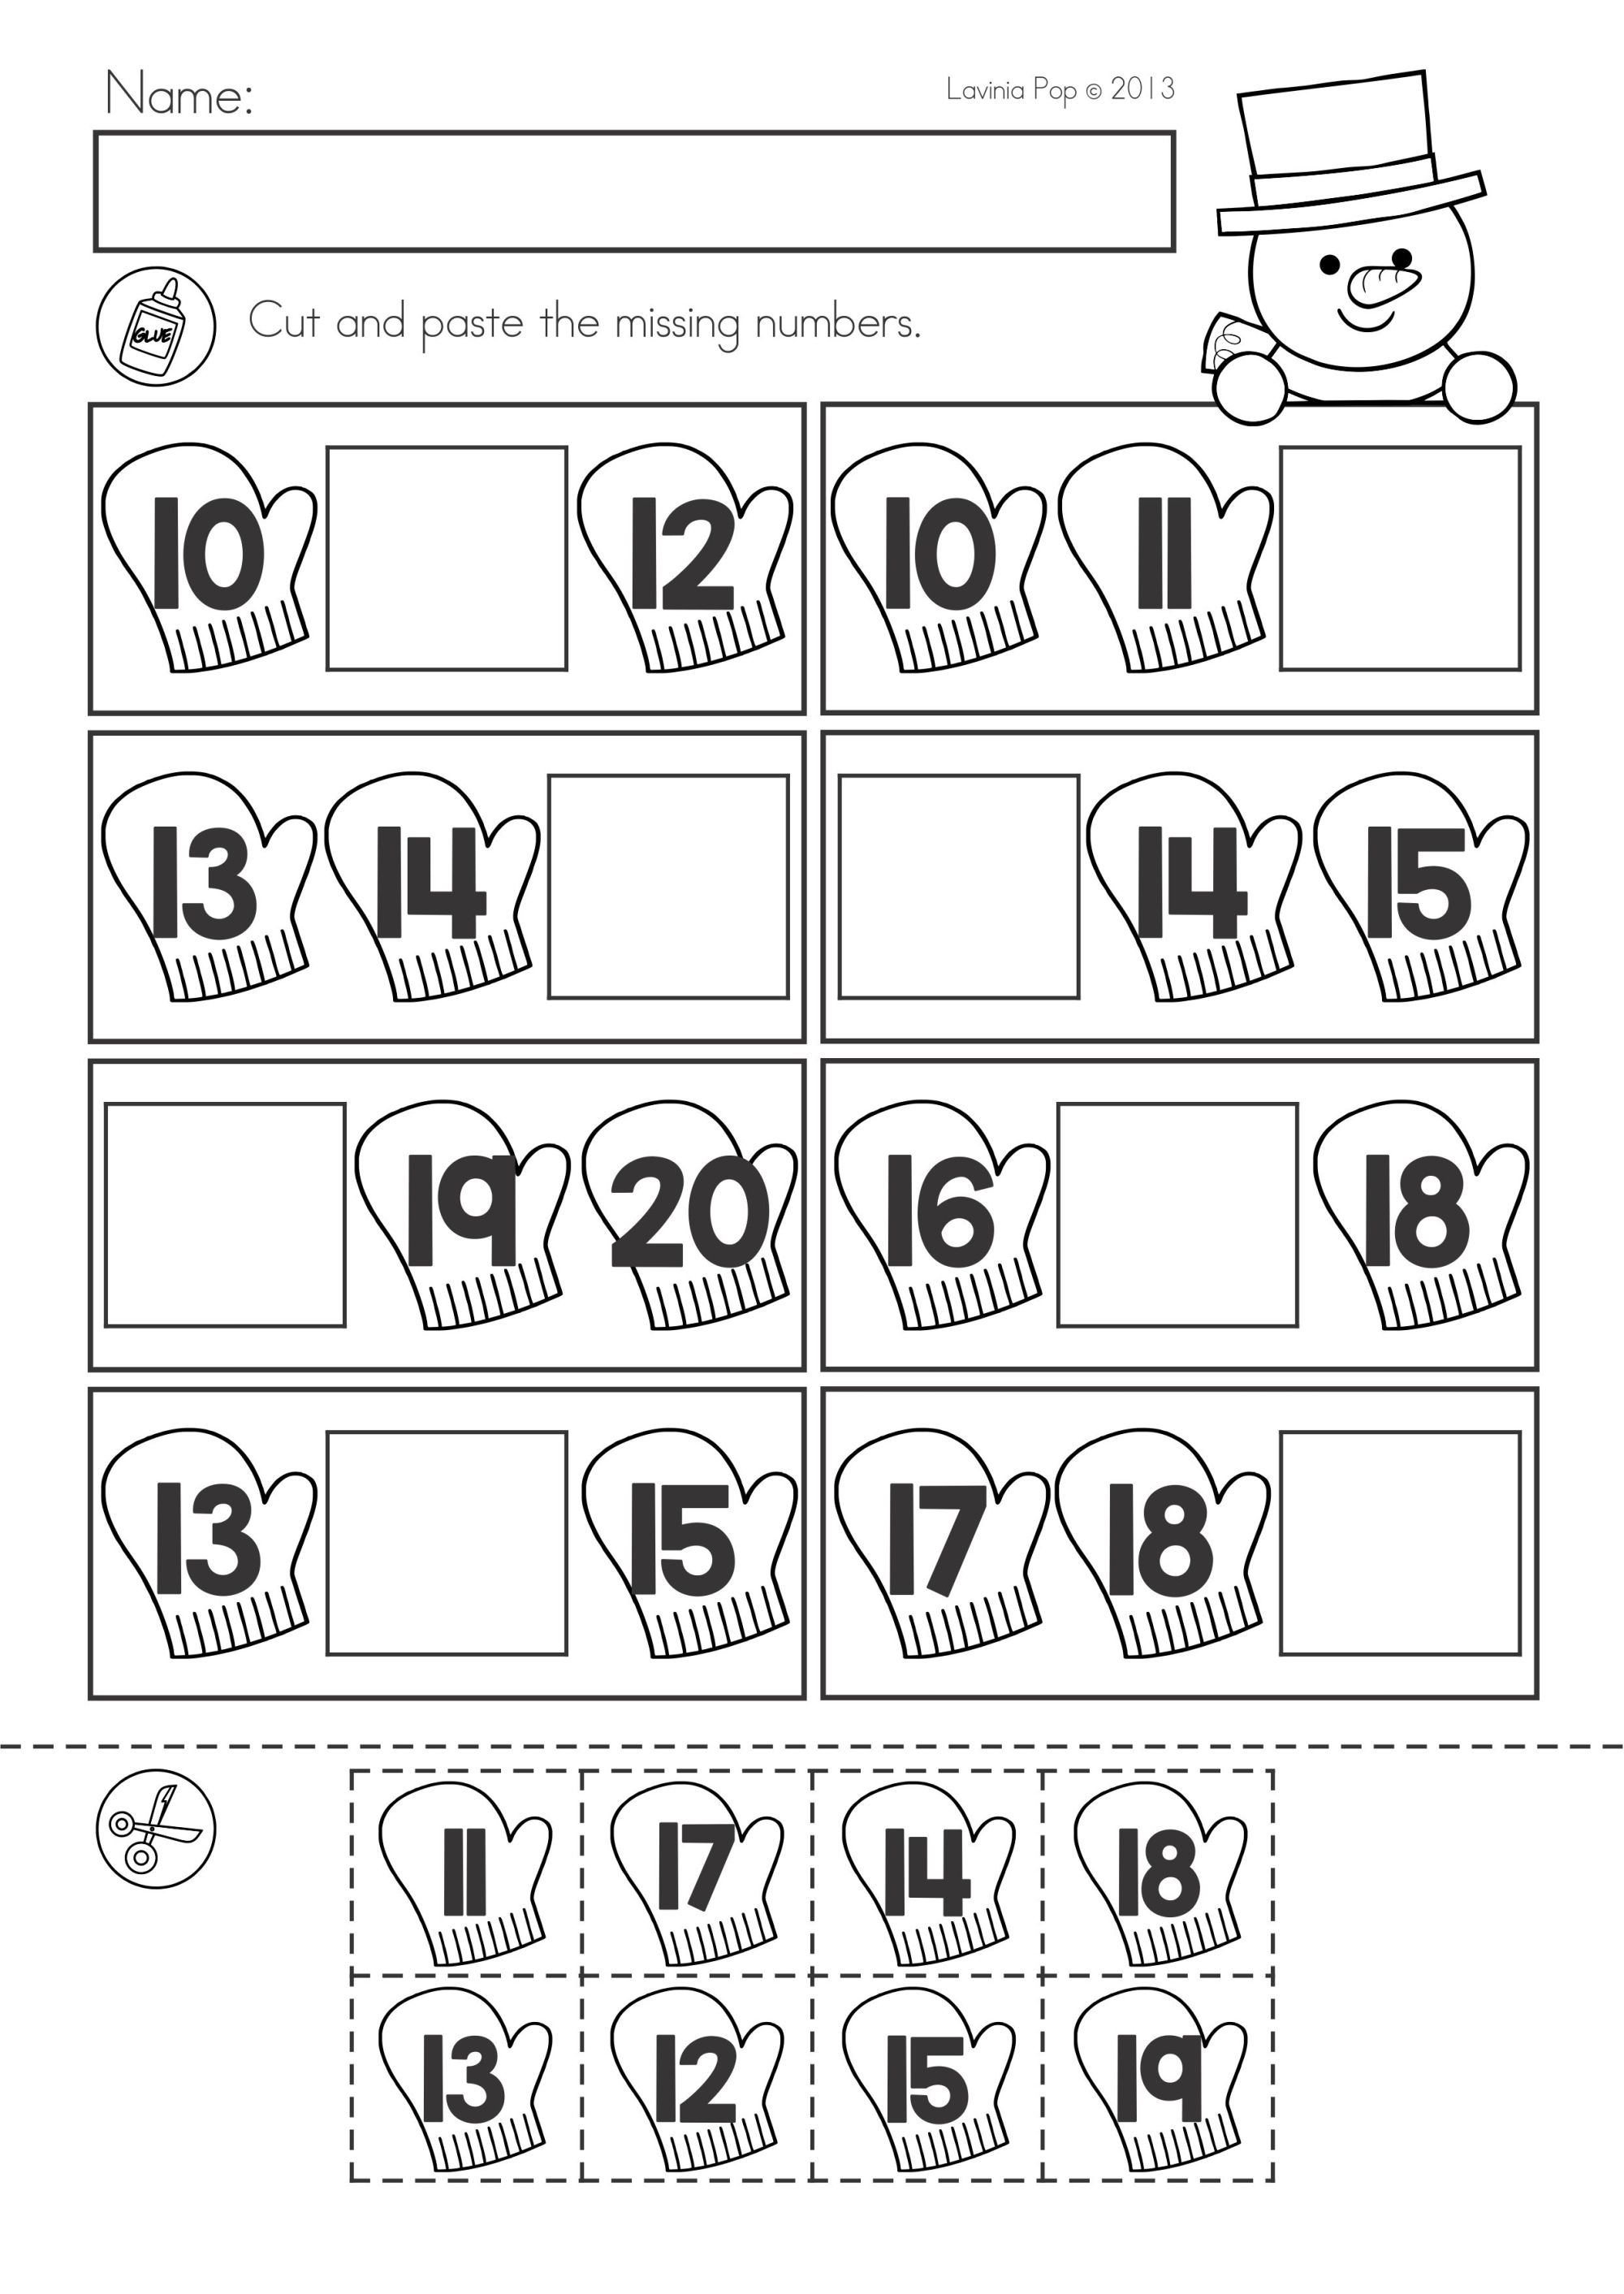 hight resolution of Free Printable Cut And Paste Worksheets For Preschool   Animals on Best  Worksheets Collection 2586